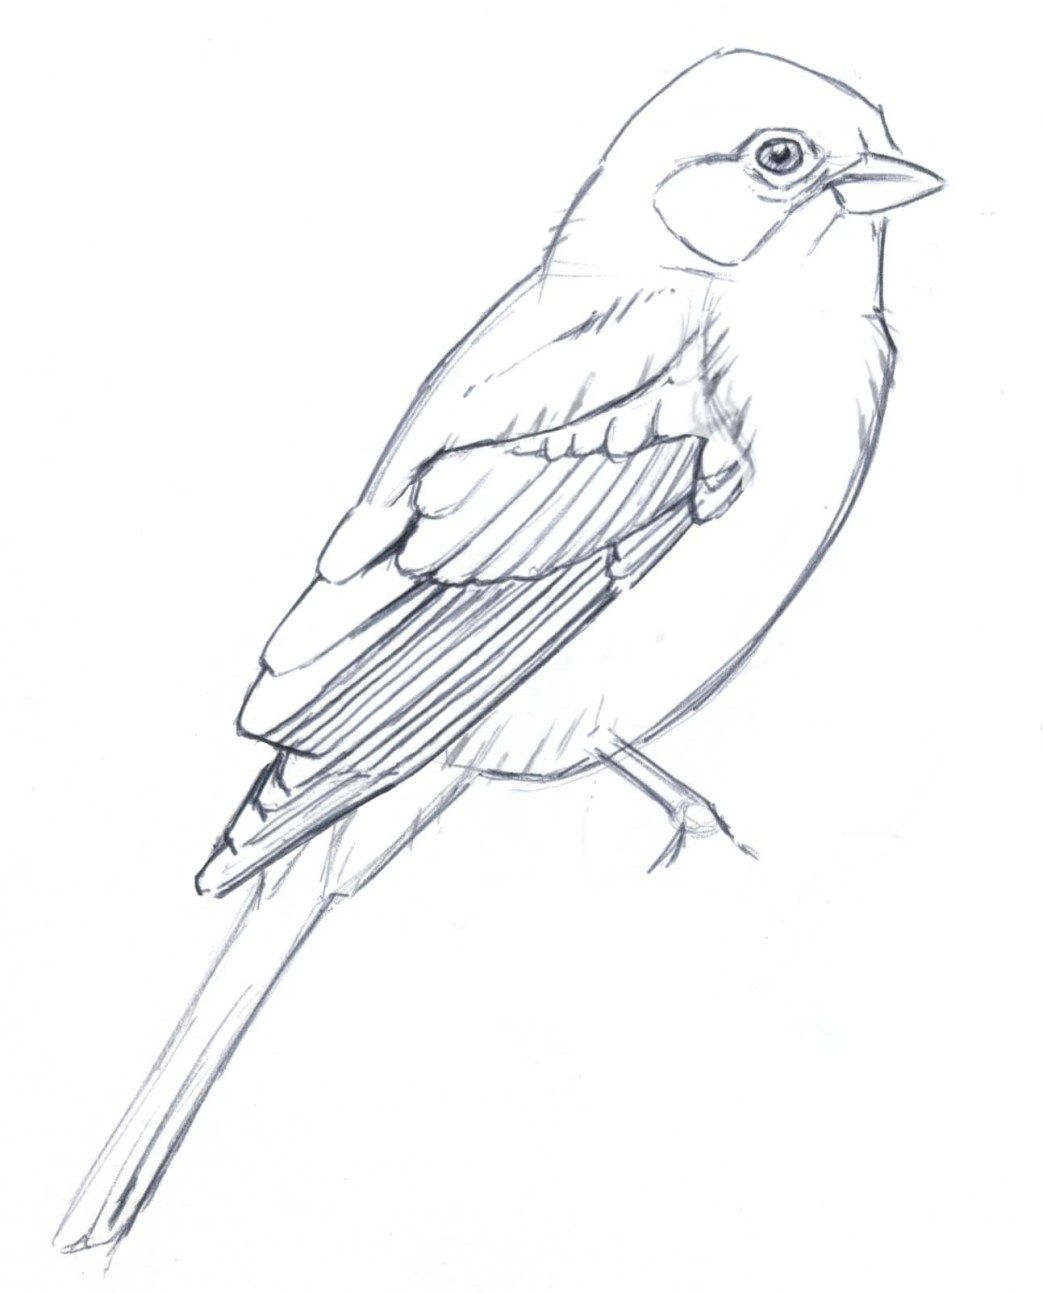 Learn to simplify bird plumage with a few lines drawing bird feathers takes an understanding of the underlying structure while not getting lost in detail